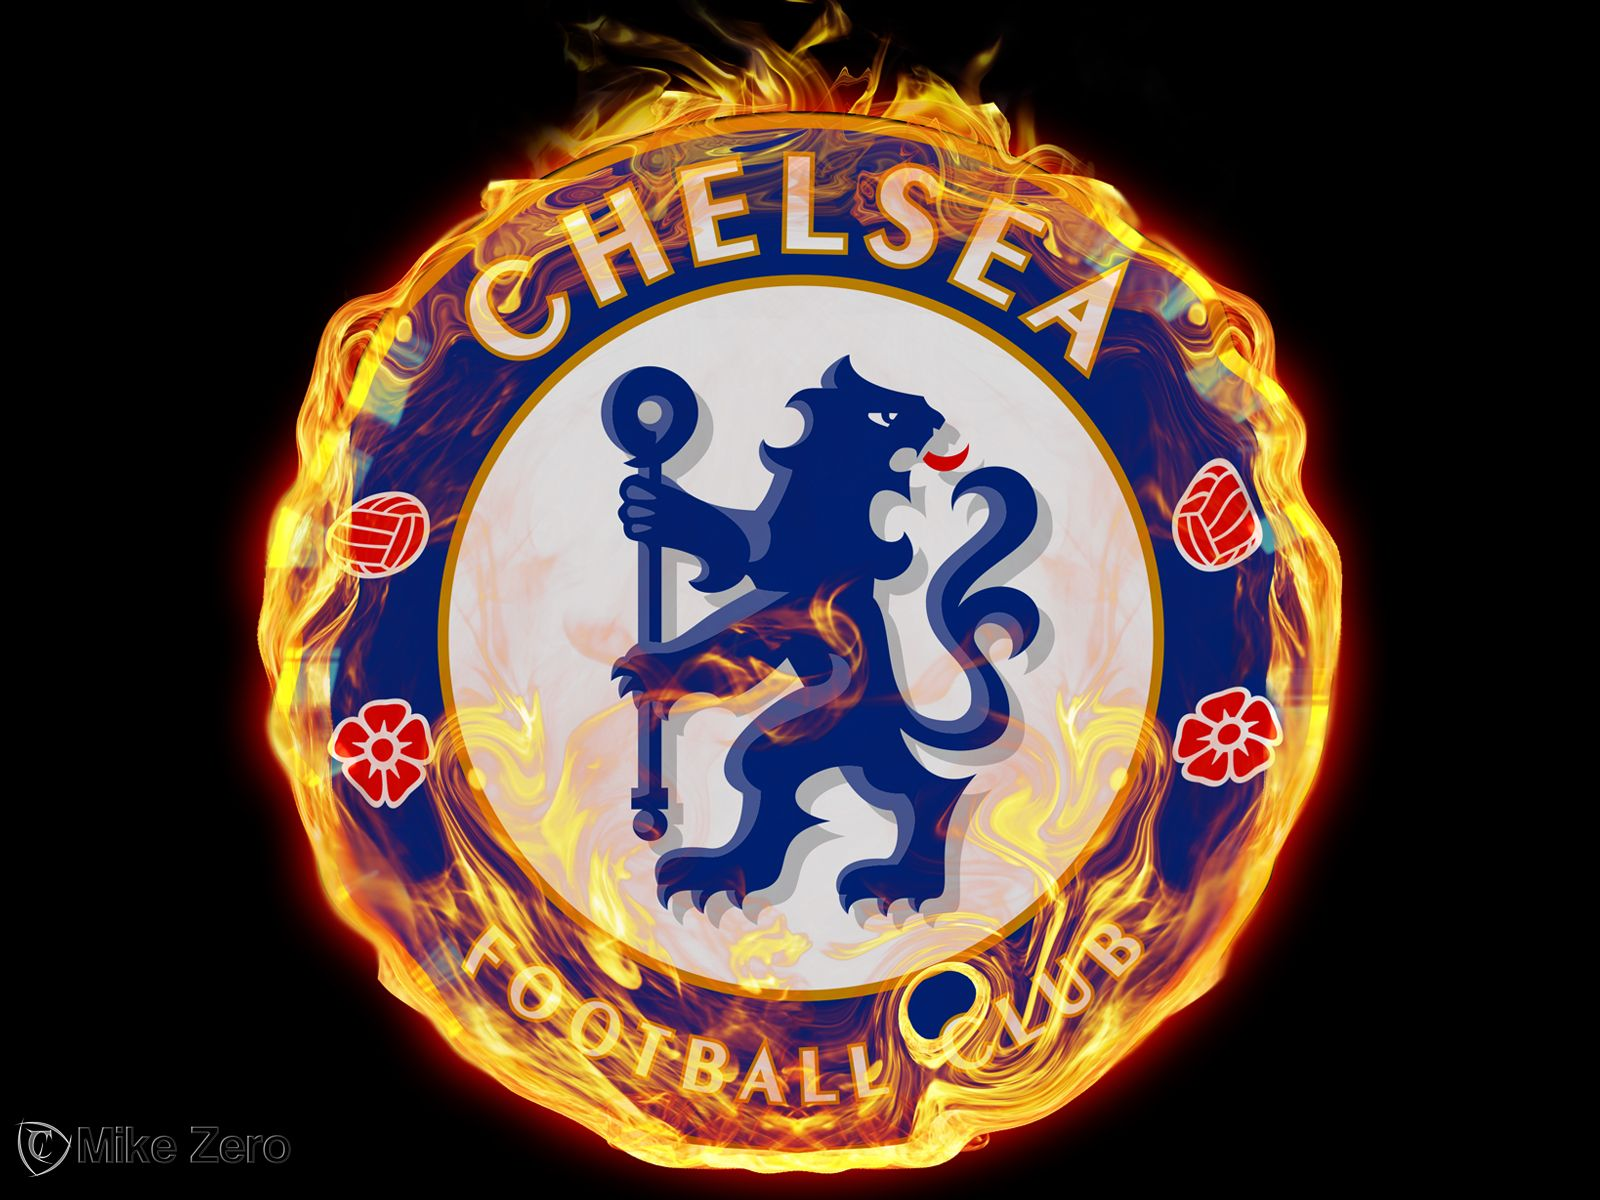 Chelsea fc football pinterest chelsea fc chelsea and chelsea fc wallpaper downloadshd voltagebd